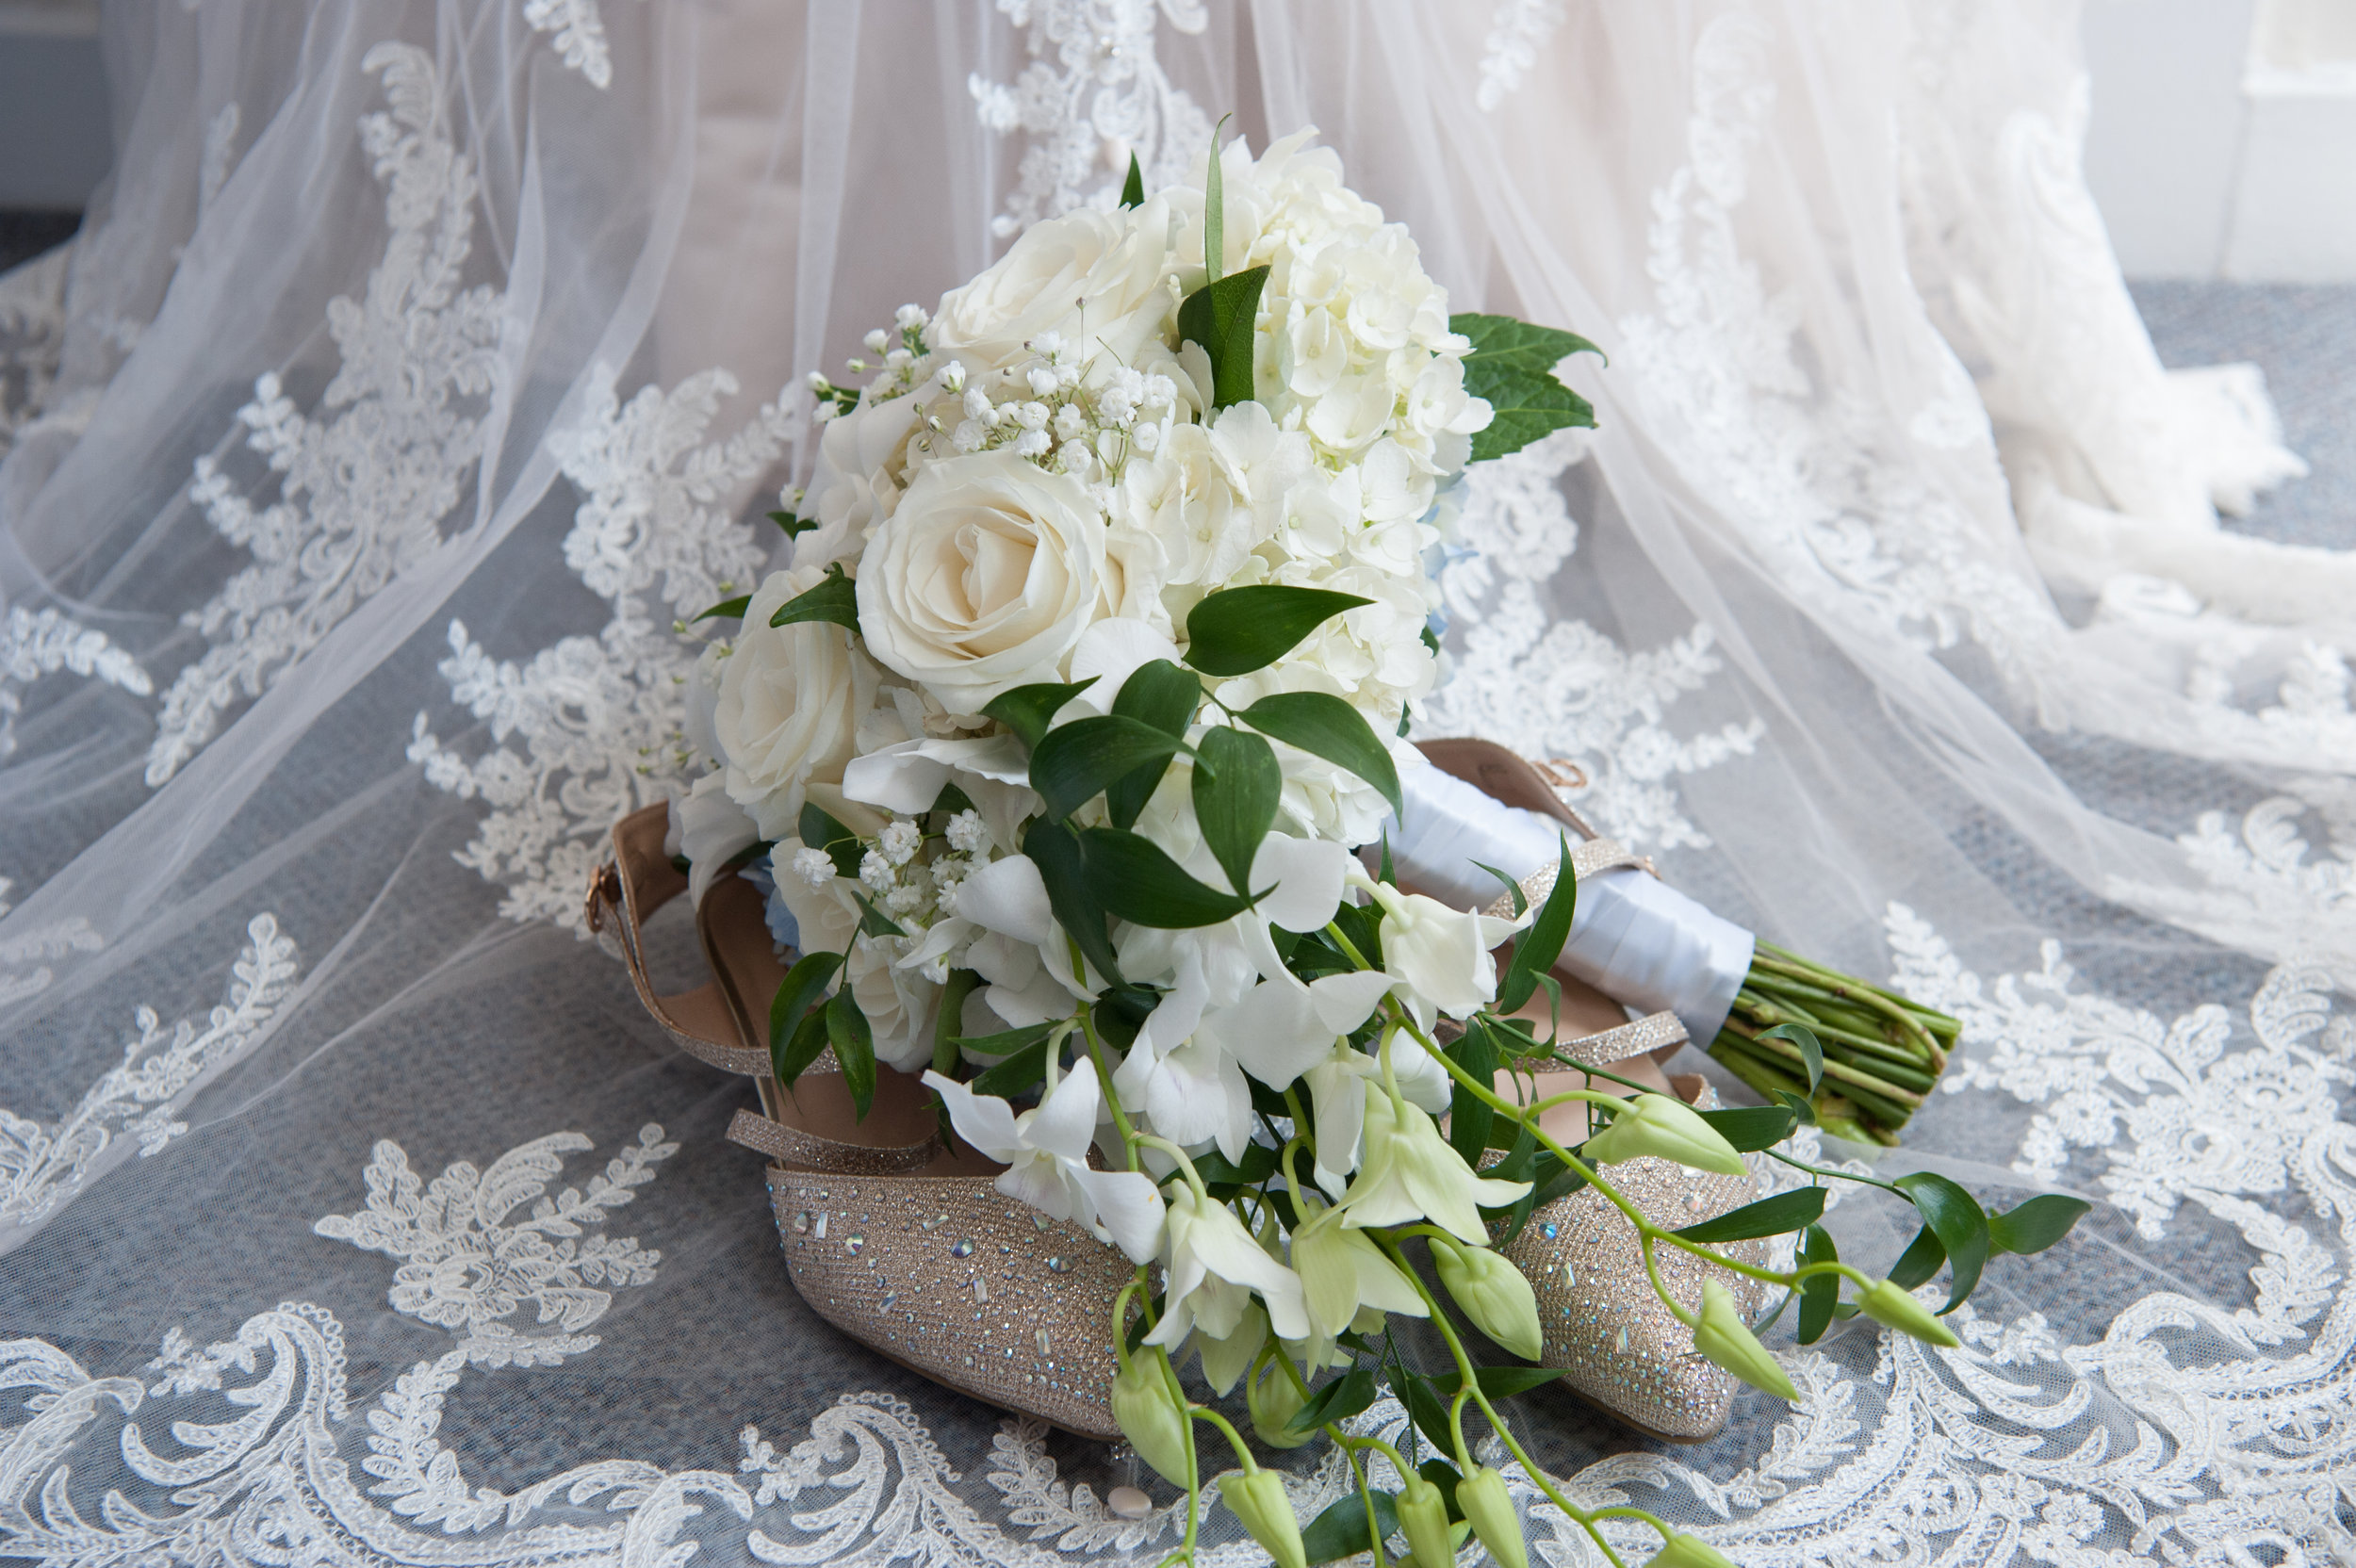 Details from Cape Cod Weddings